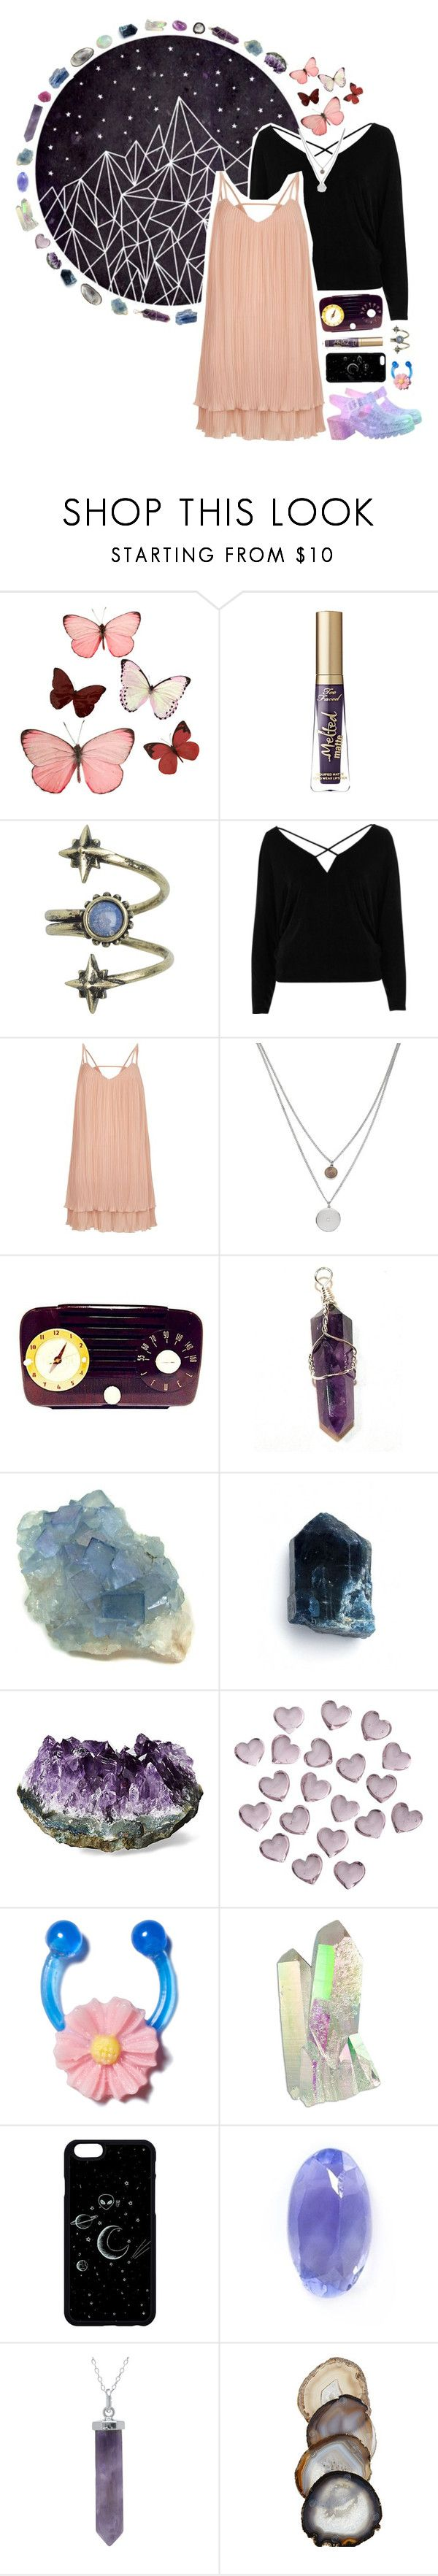 """Pretty In Pink"" by aquarian-anarchy ❤ liked on Polyvore featuring H&M, Ettika, River Island, Kenneth Cole, Mother of Pearl, Crate and Barrel, Loquet and vintage"